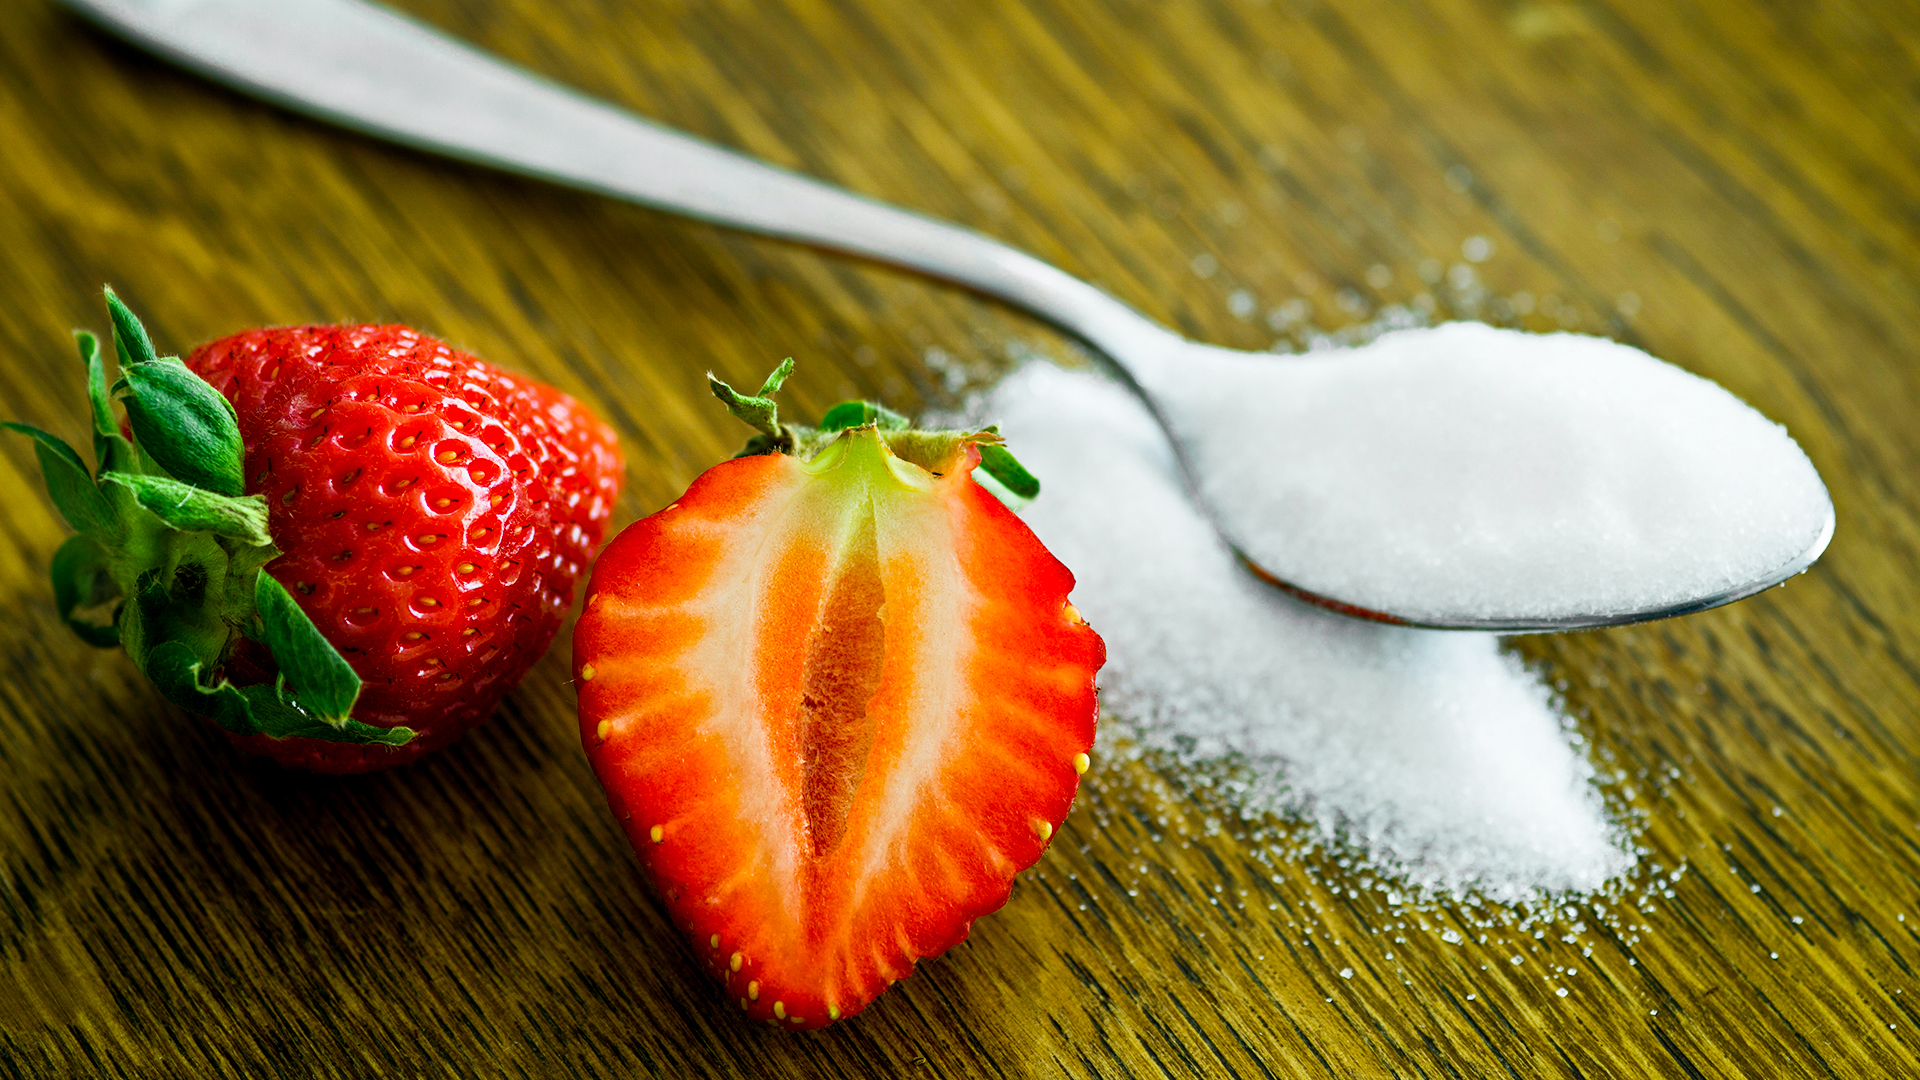 Fructose In Diet Linked To Obesity: Study